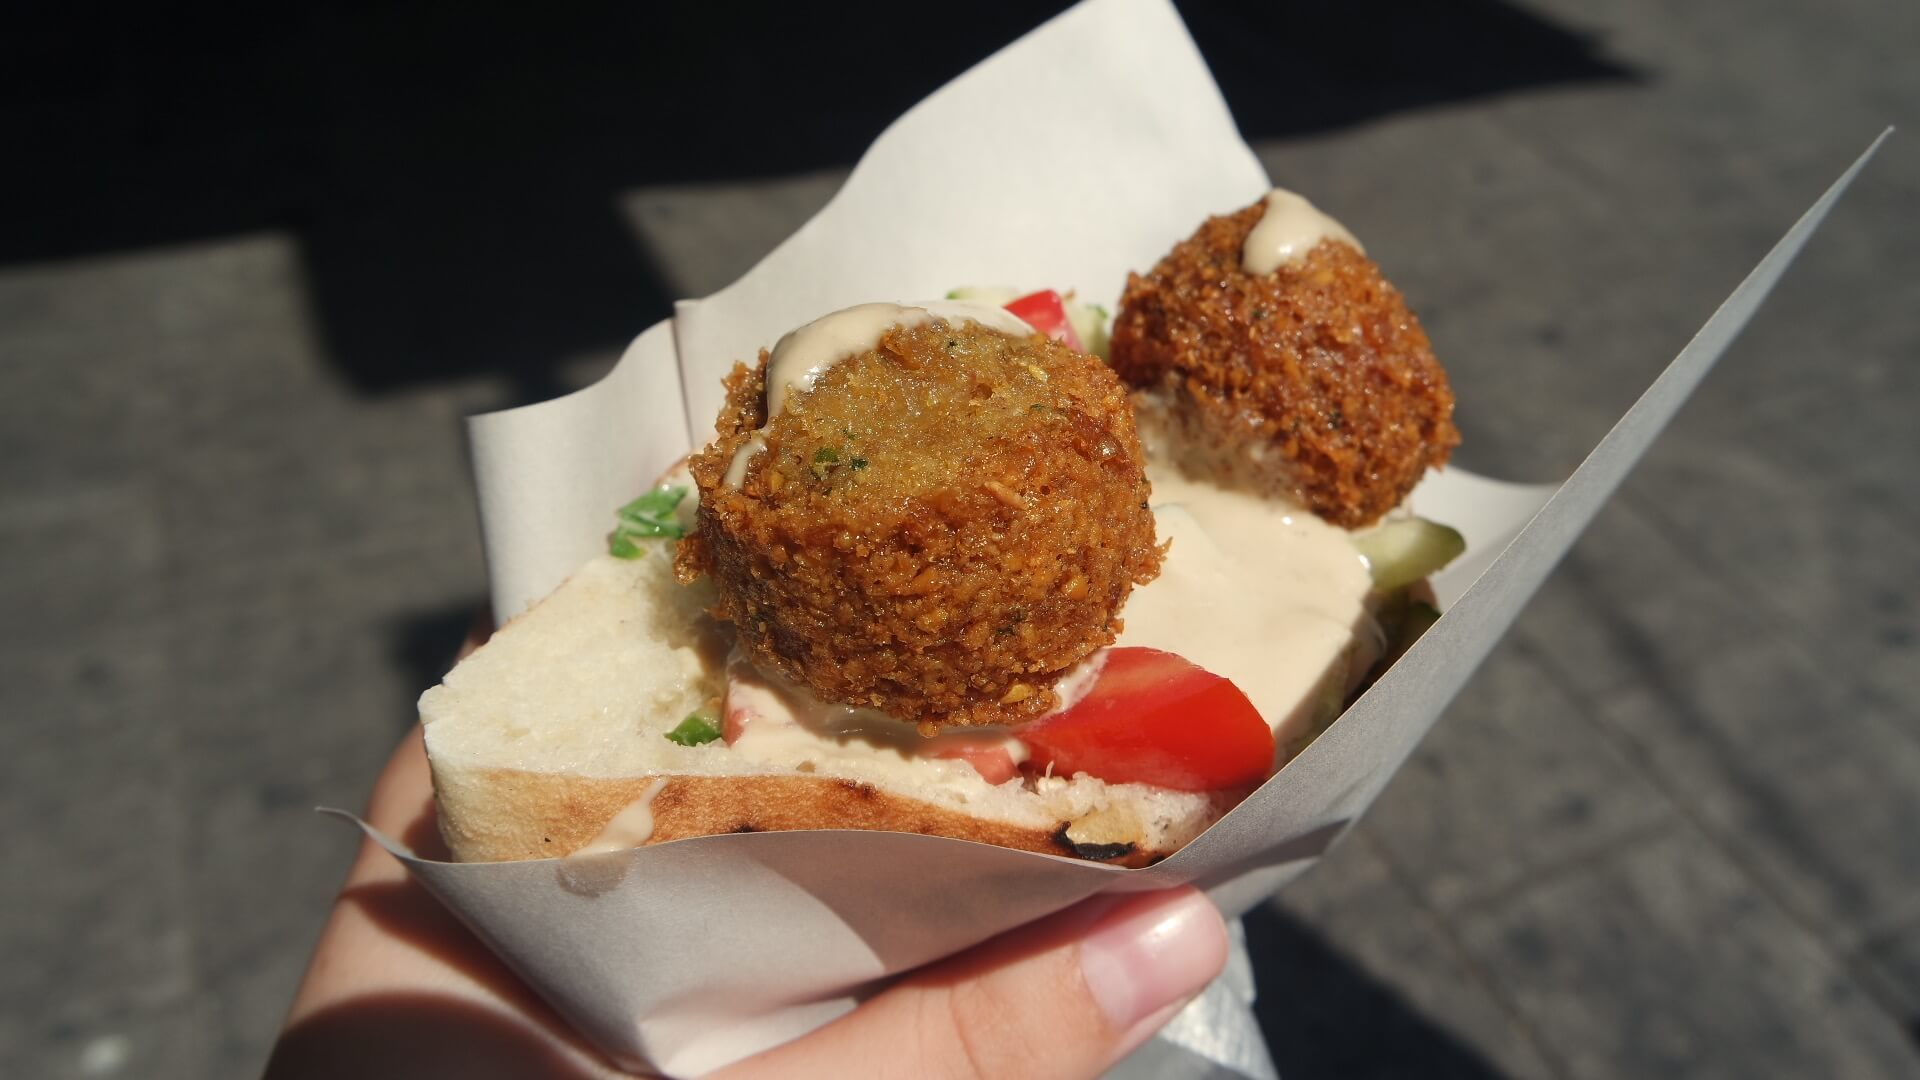 A photo of vegetarian falafel found in Israel